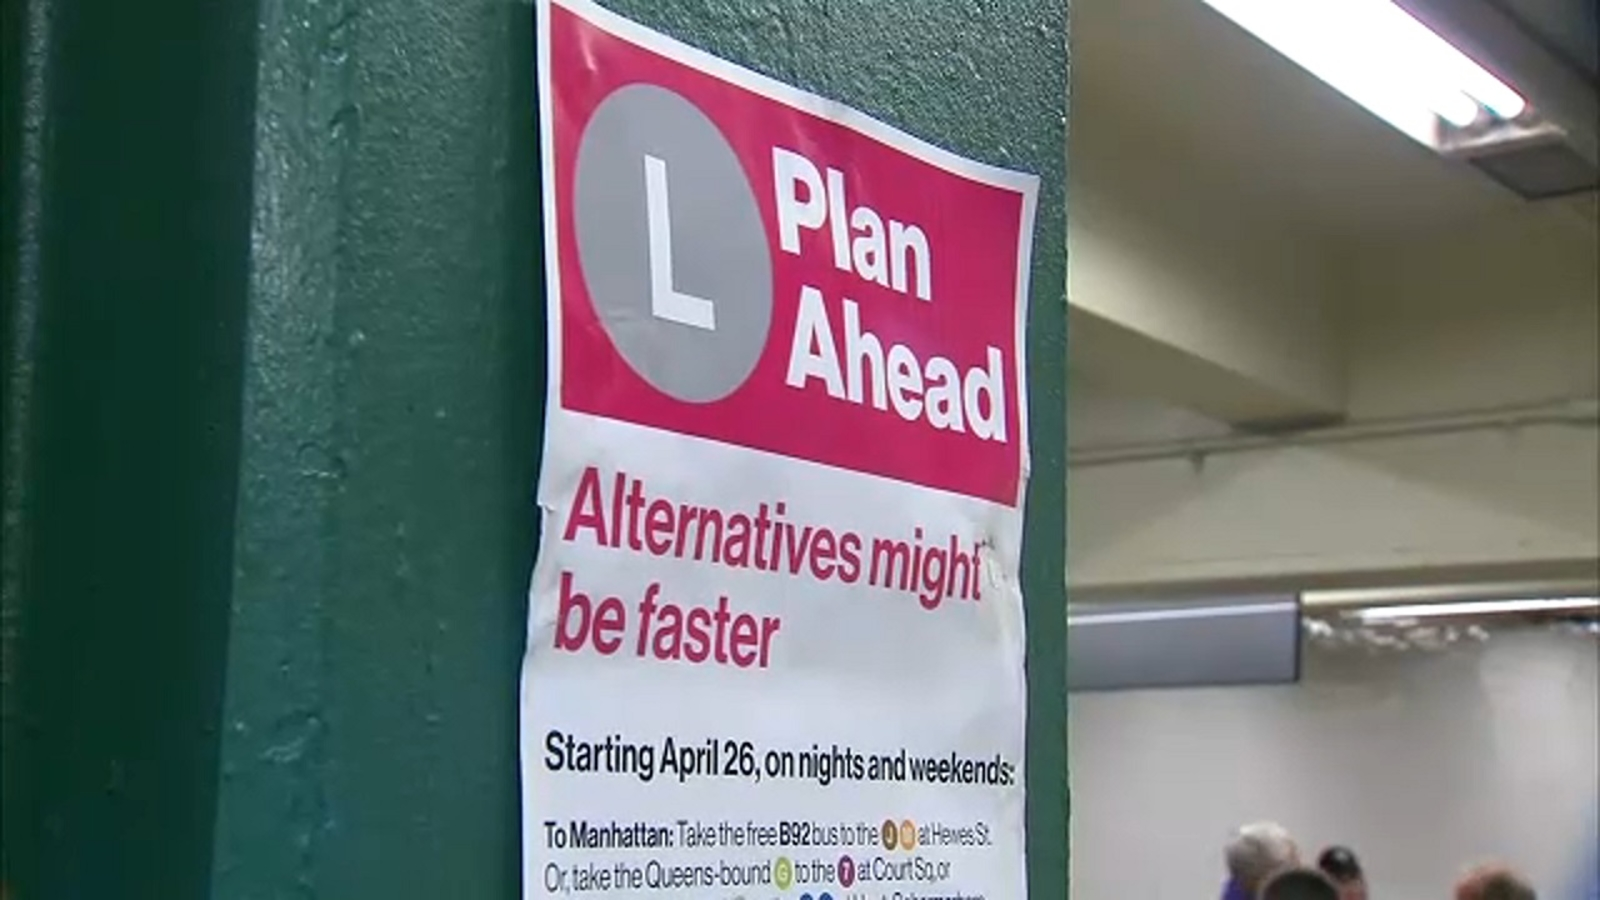 PLAN AHEAD: What to know before L train project begins